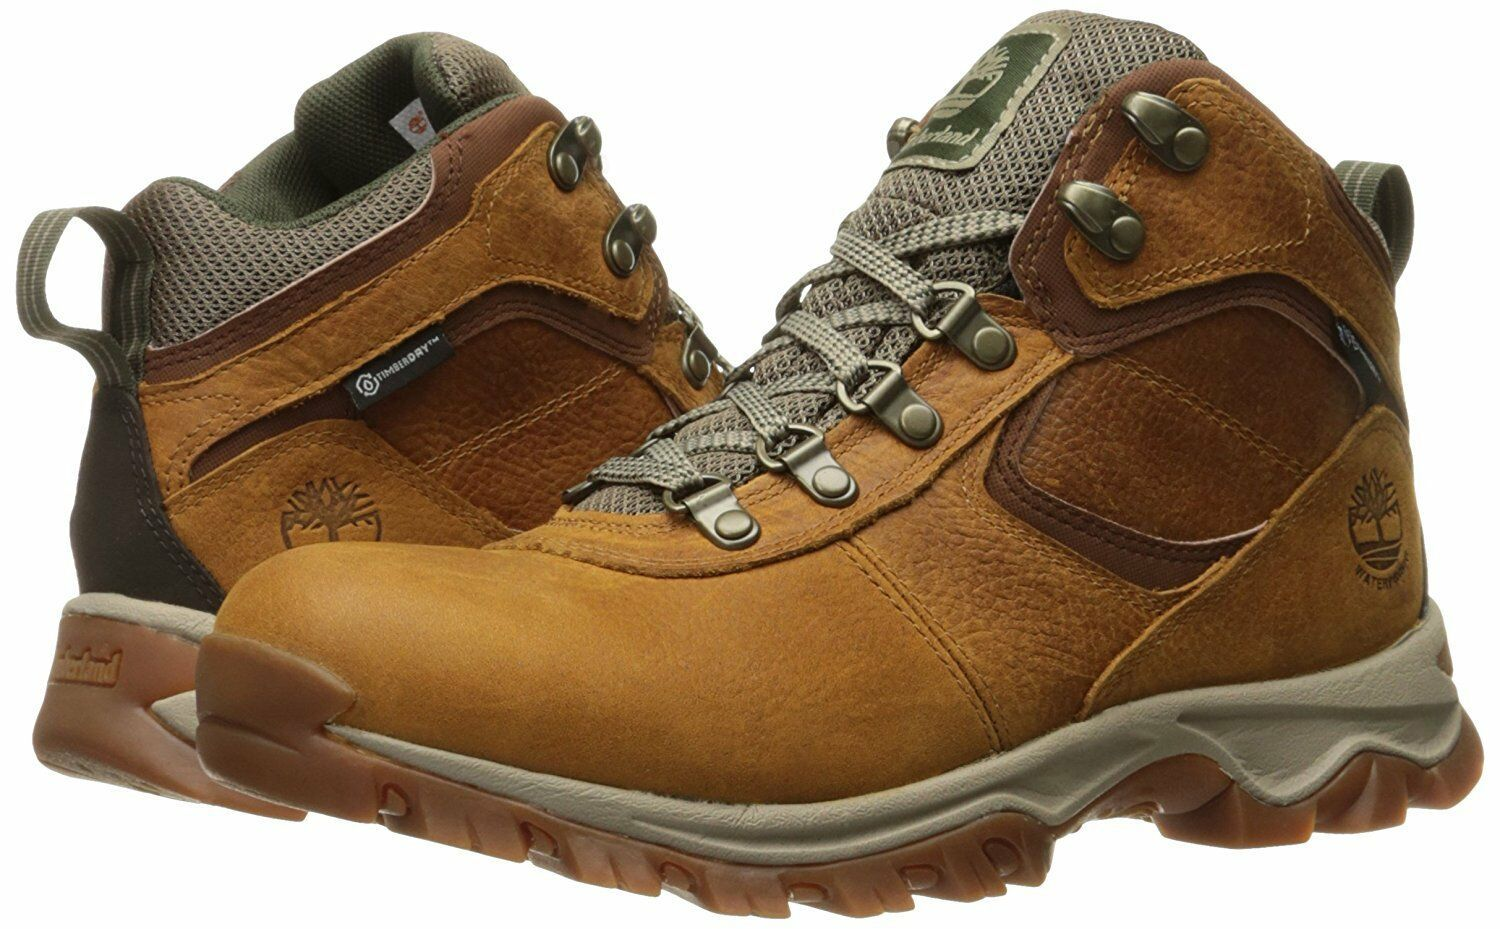 Men's Timberland MT MADDSEN MID WATERPROOF HIKING BOOTS, TB0A1J1N230 Sizes 8-14